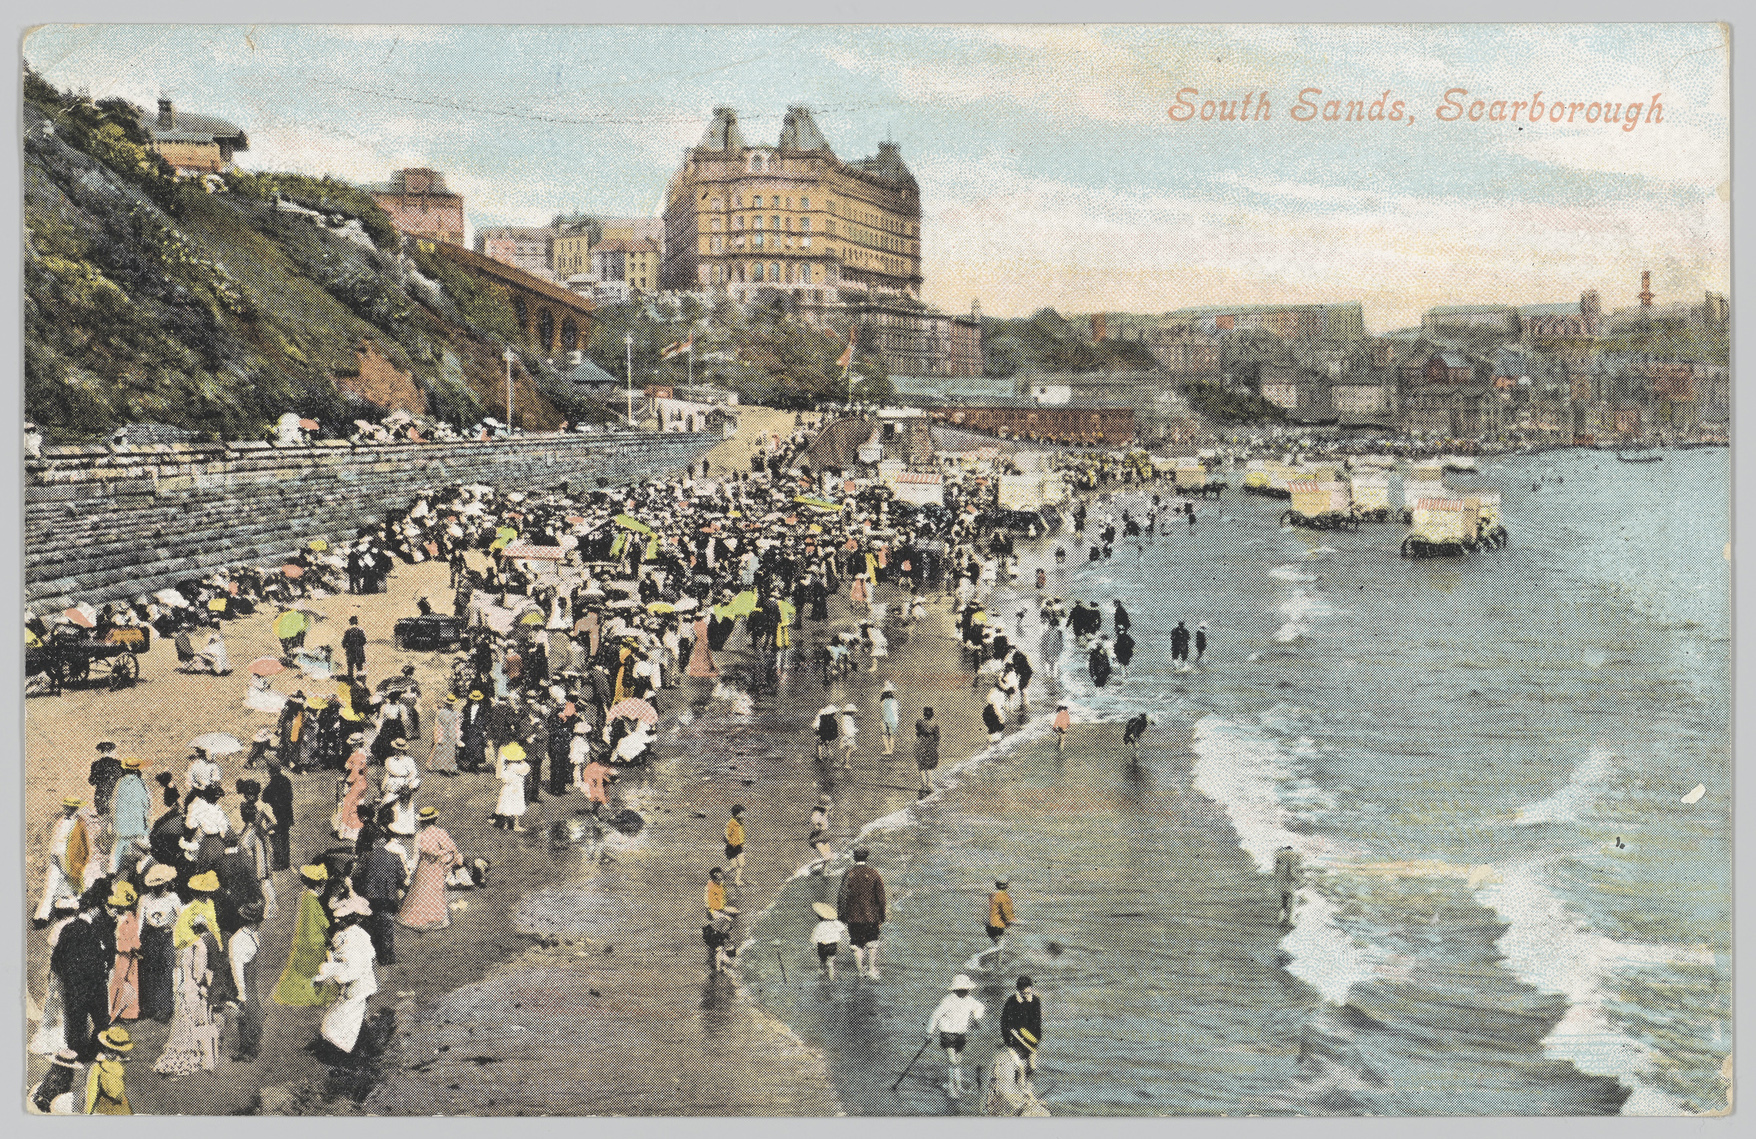 Postcard depicting many people on a beach with a large building in the background.